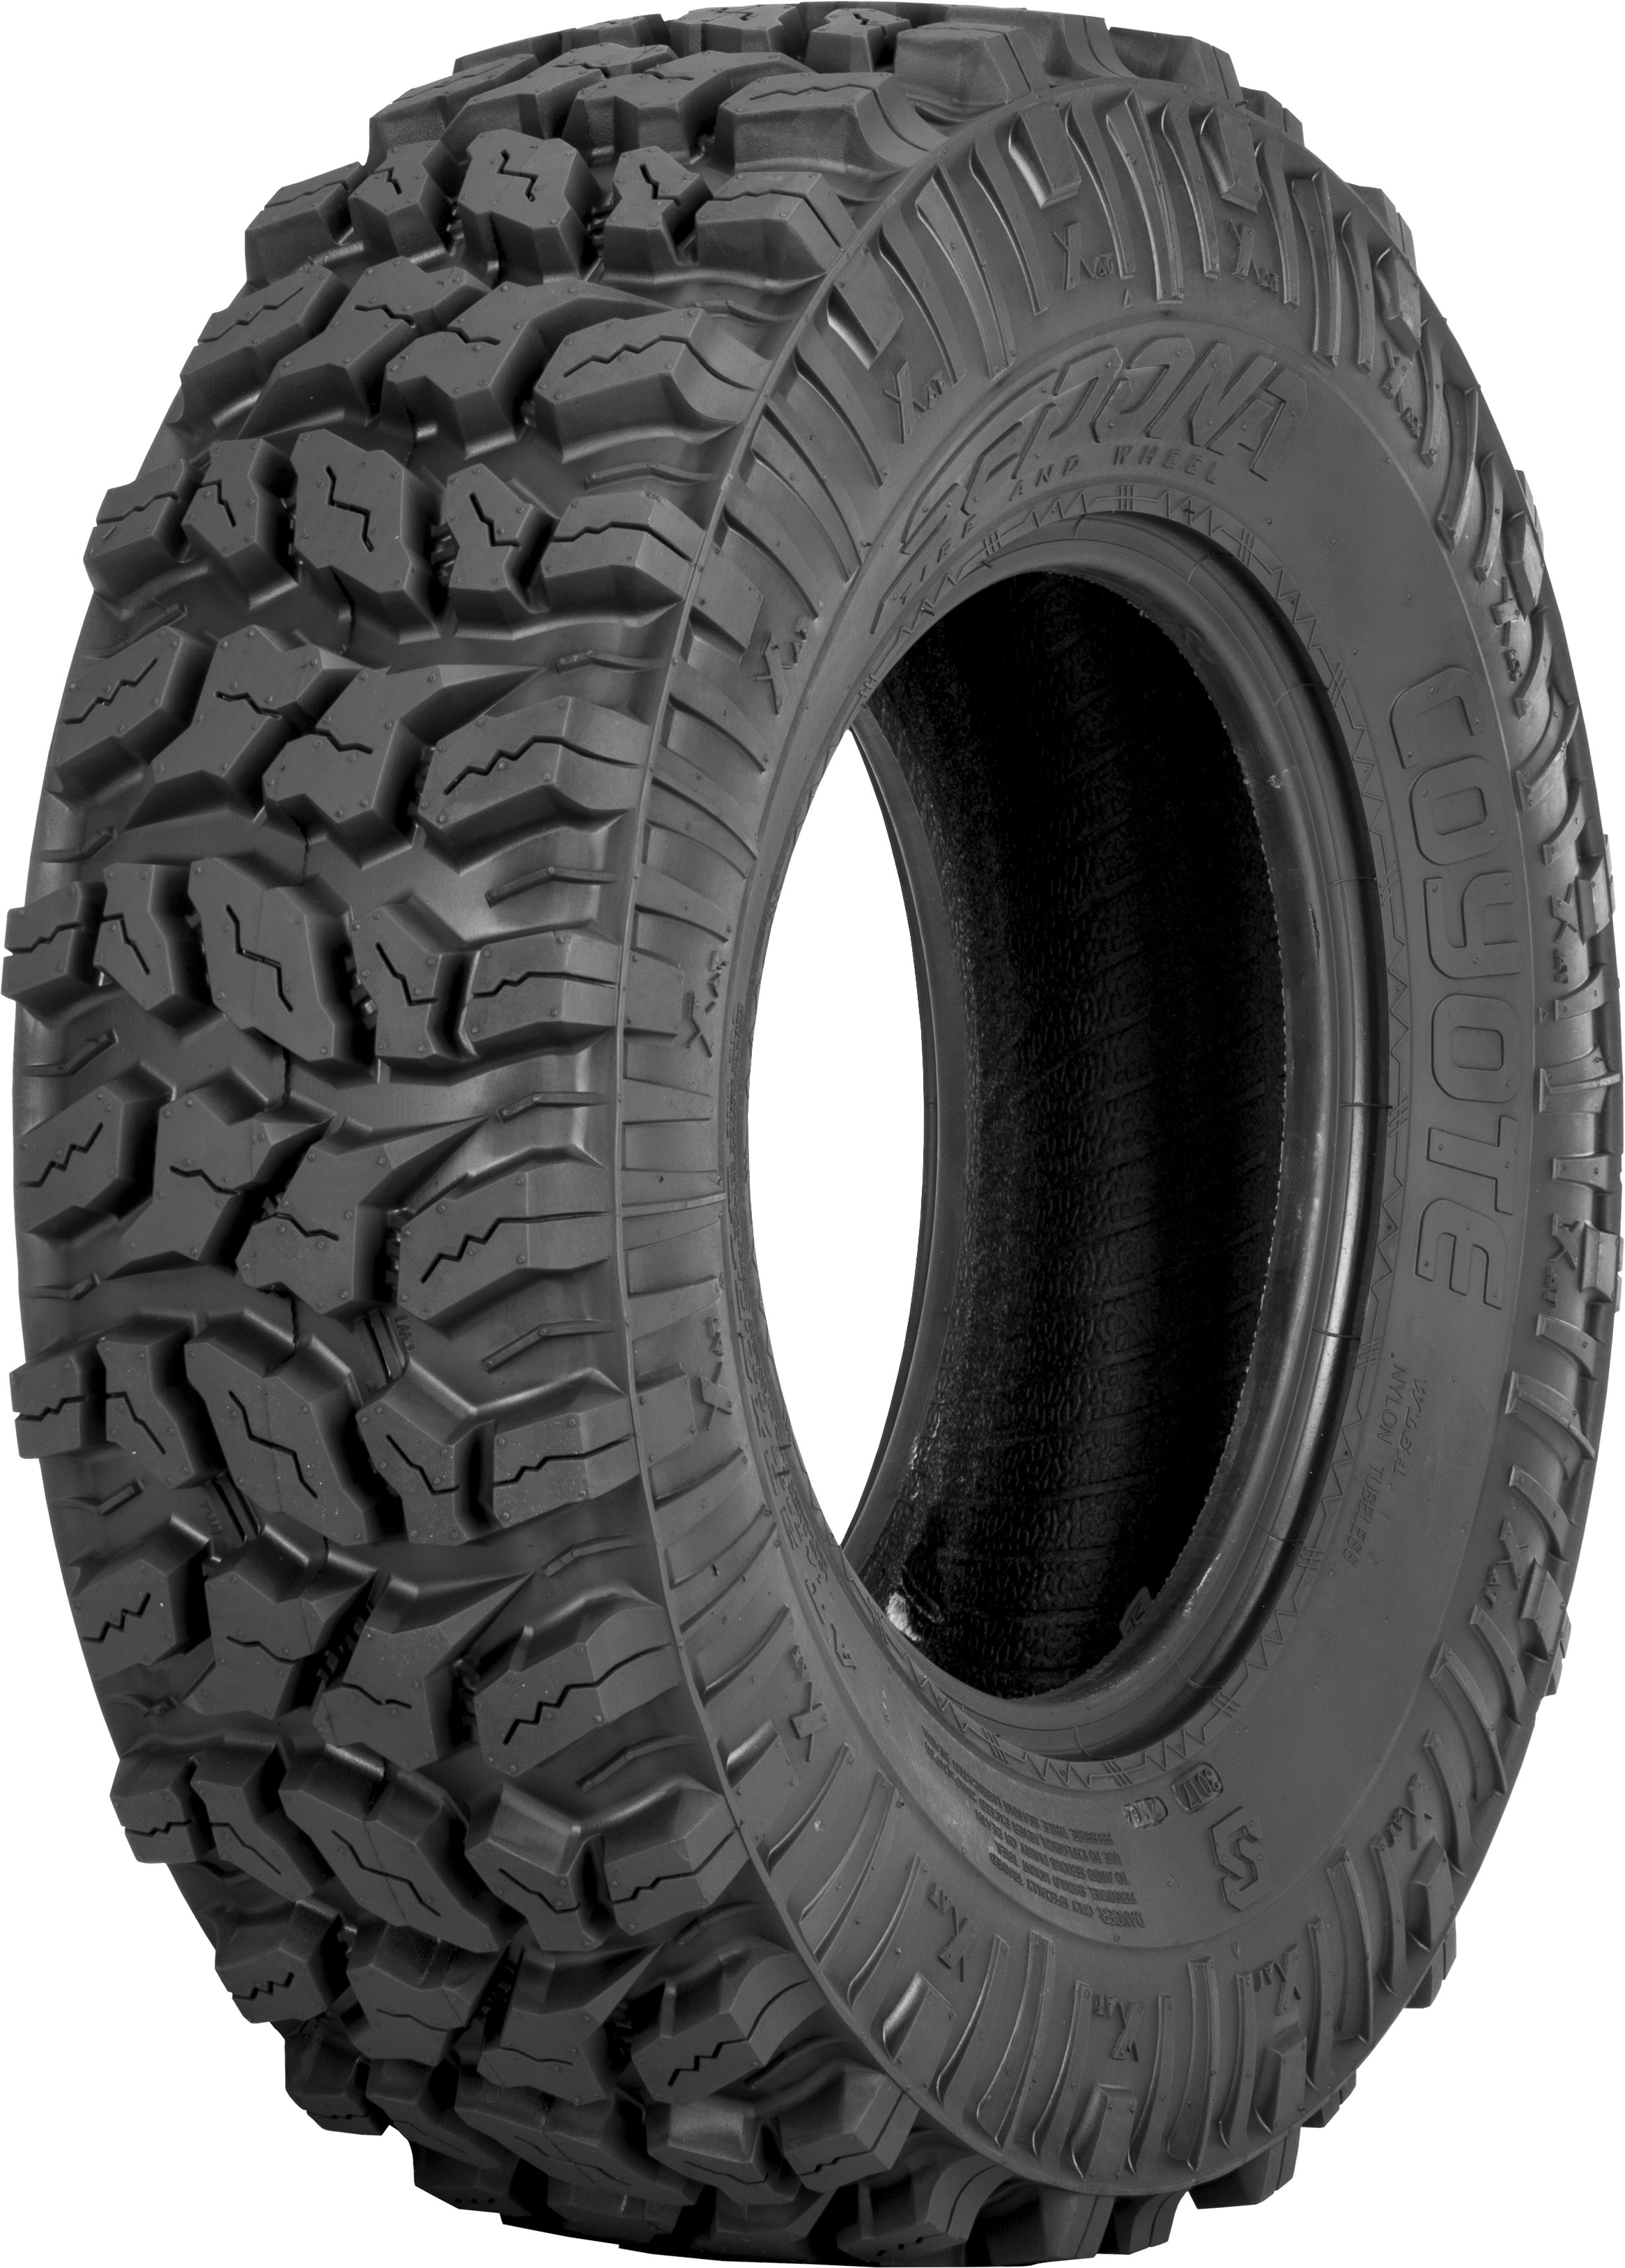 Sedona CO27912 Tire Coyote Front 27X9-12 Lr-440Lbs Bias